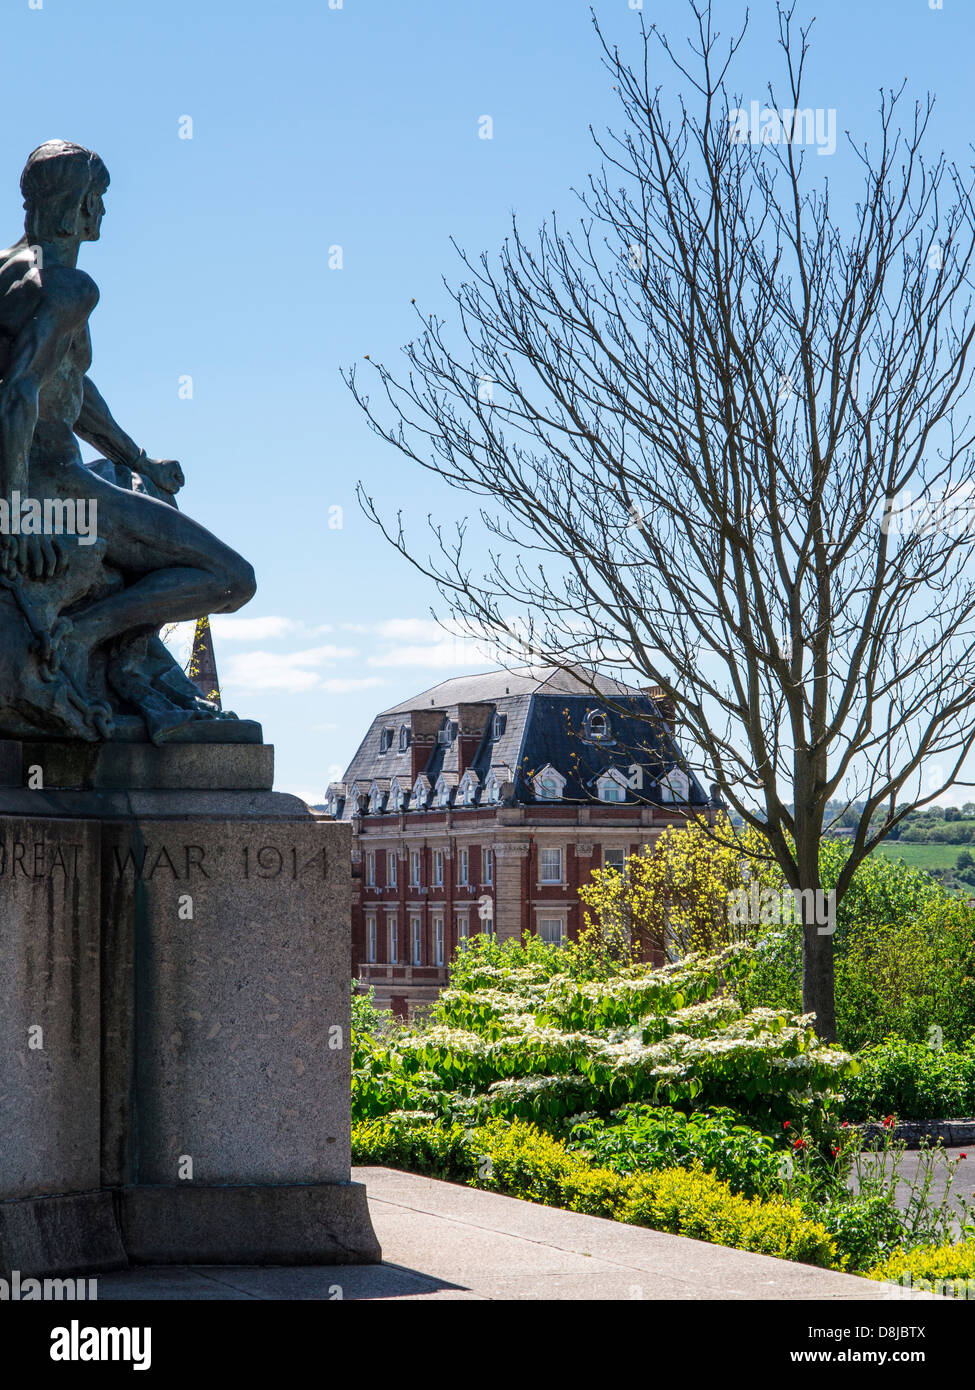 Great War statue and Rougemont Hotel from Northernhay Gardens, Exeter, Devon, England - Stock Image